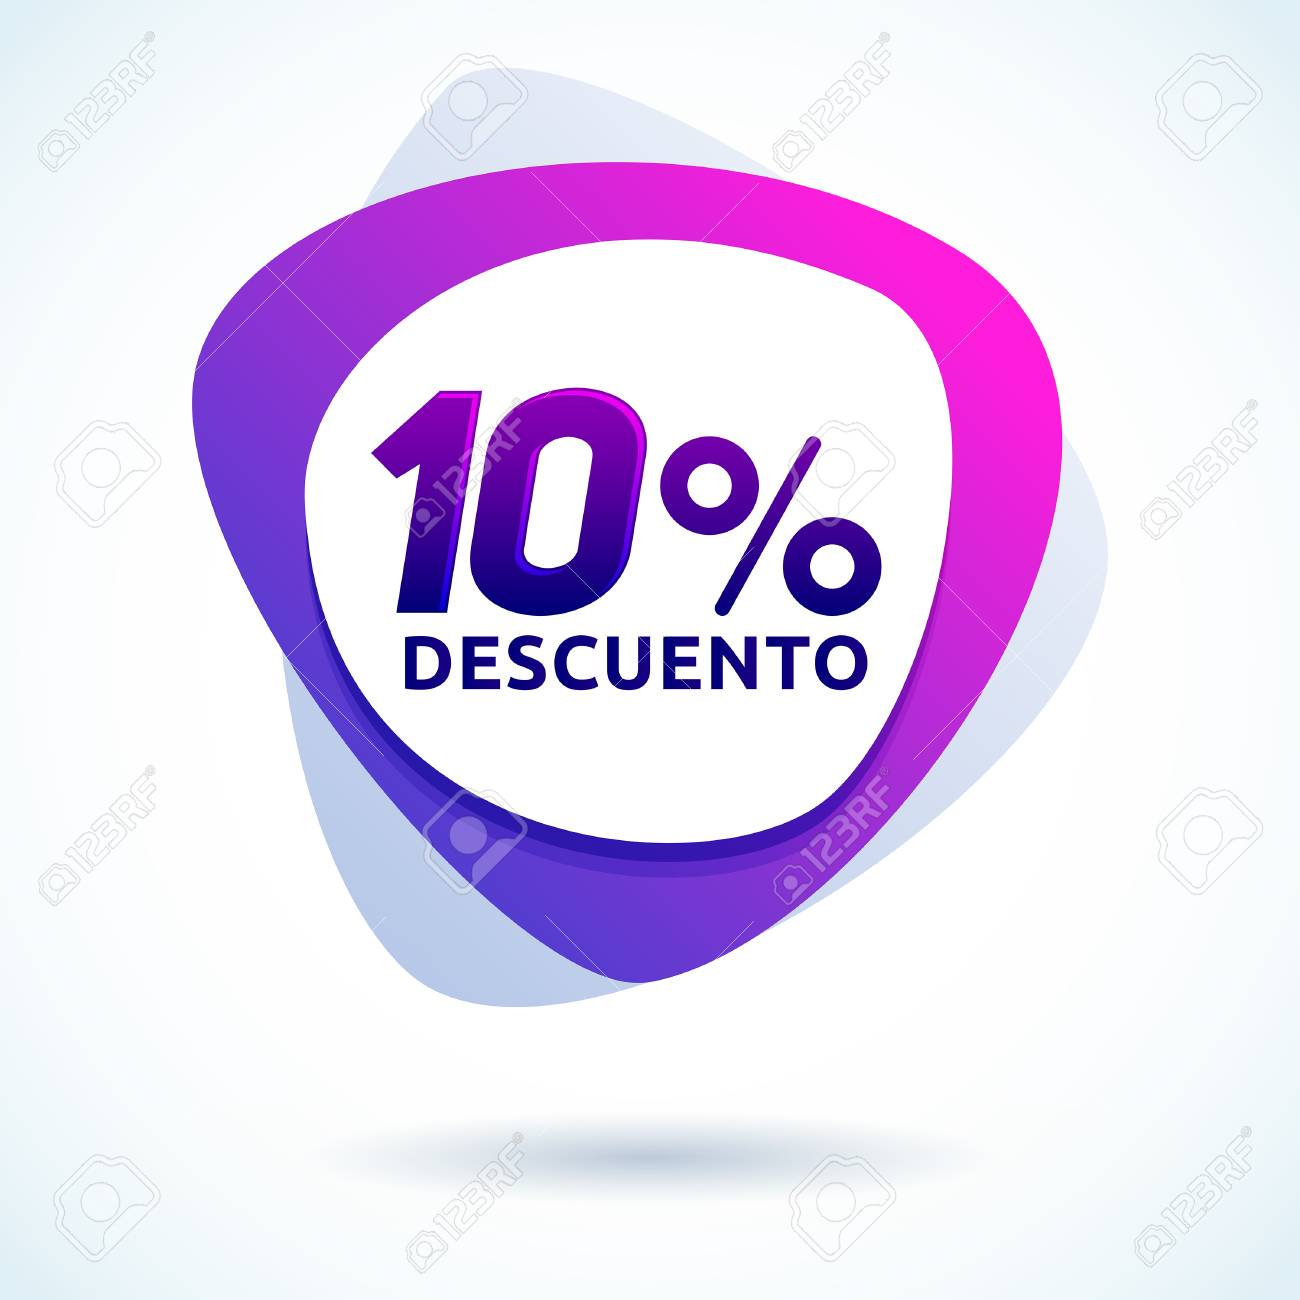 10% descuento, Spanish text, modern sale tag vector illustration,